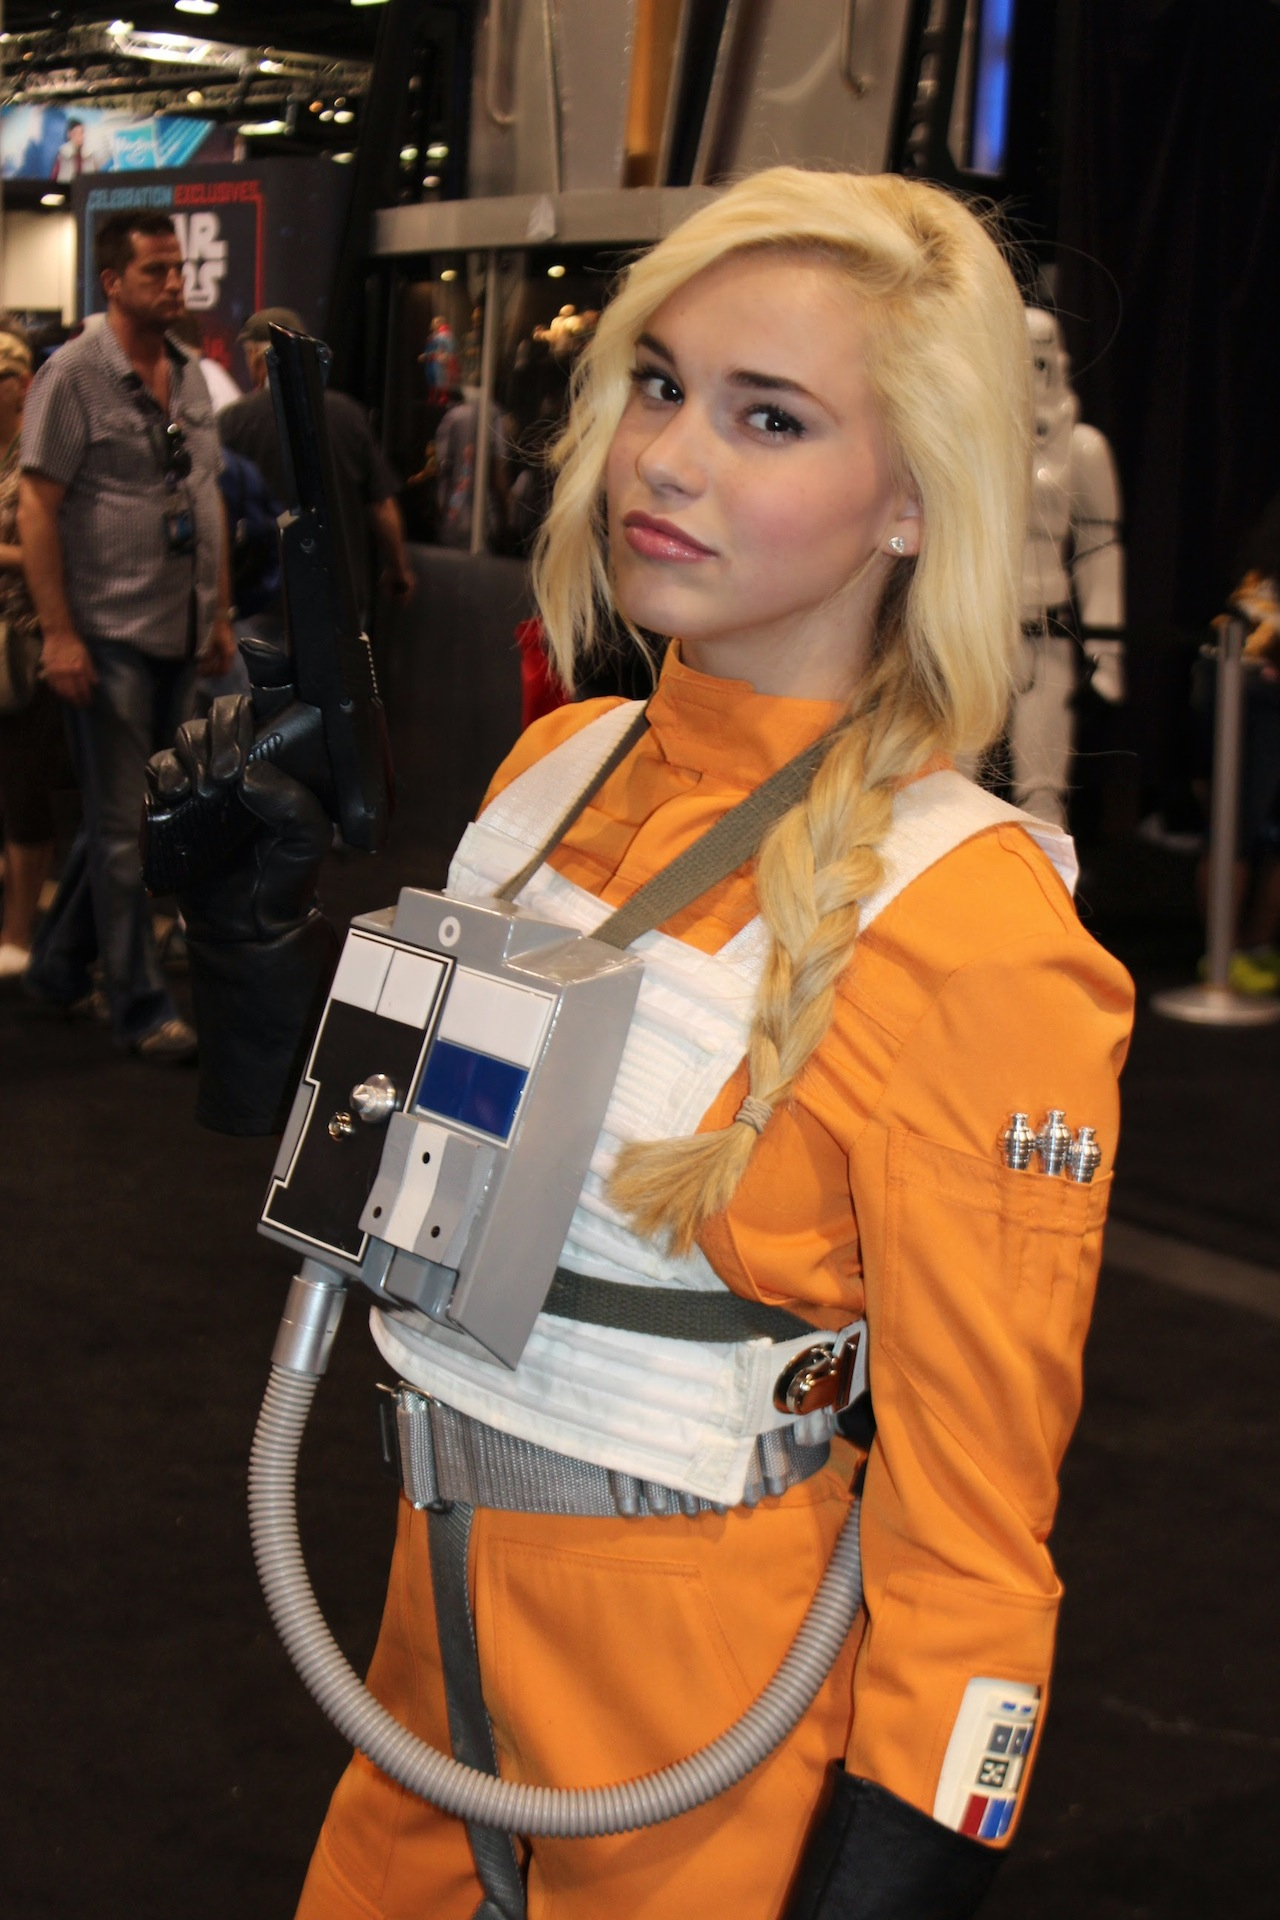 25 Of The Hottest Star Wars Cosplays To Celebrate May The 4Th - Wow Gallery  Ebaums -2279